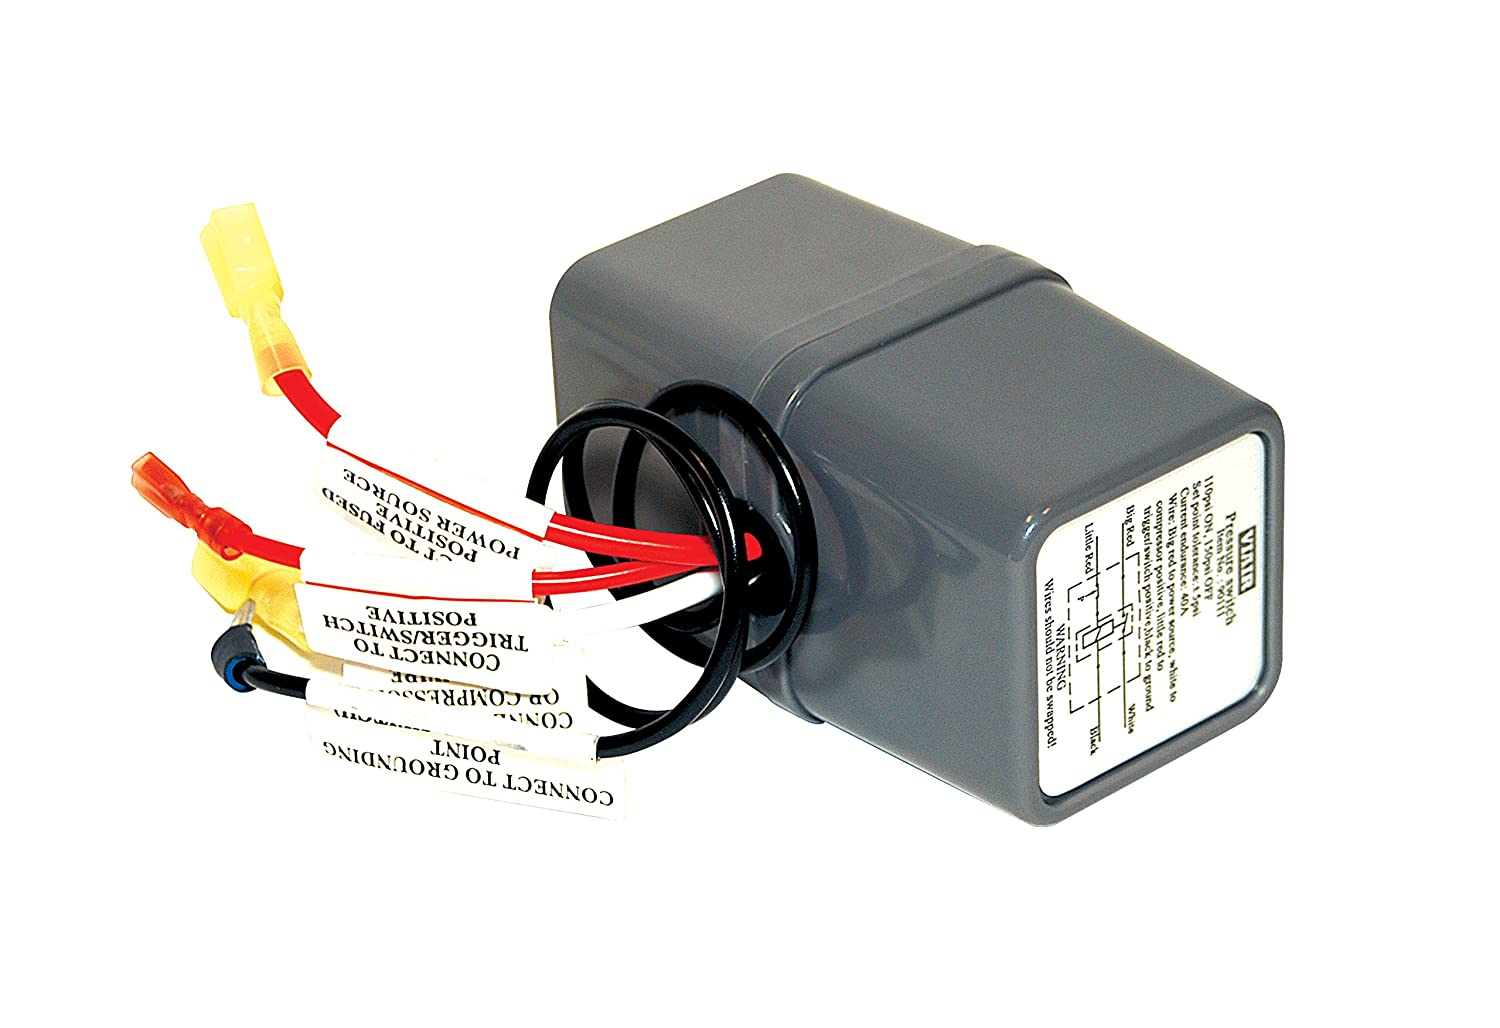 81ytVfoXmhL._SL1500_ amazon com viair 90111 pressure switch with relay automotive firestone ride rite wiring diagram at soozxer.org